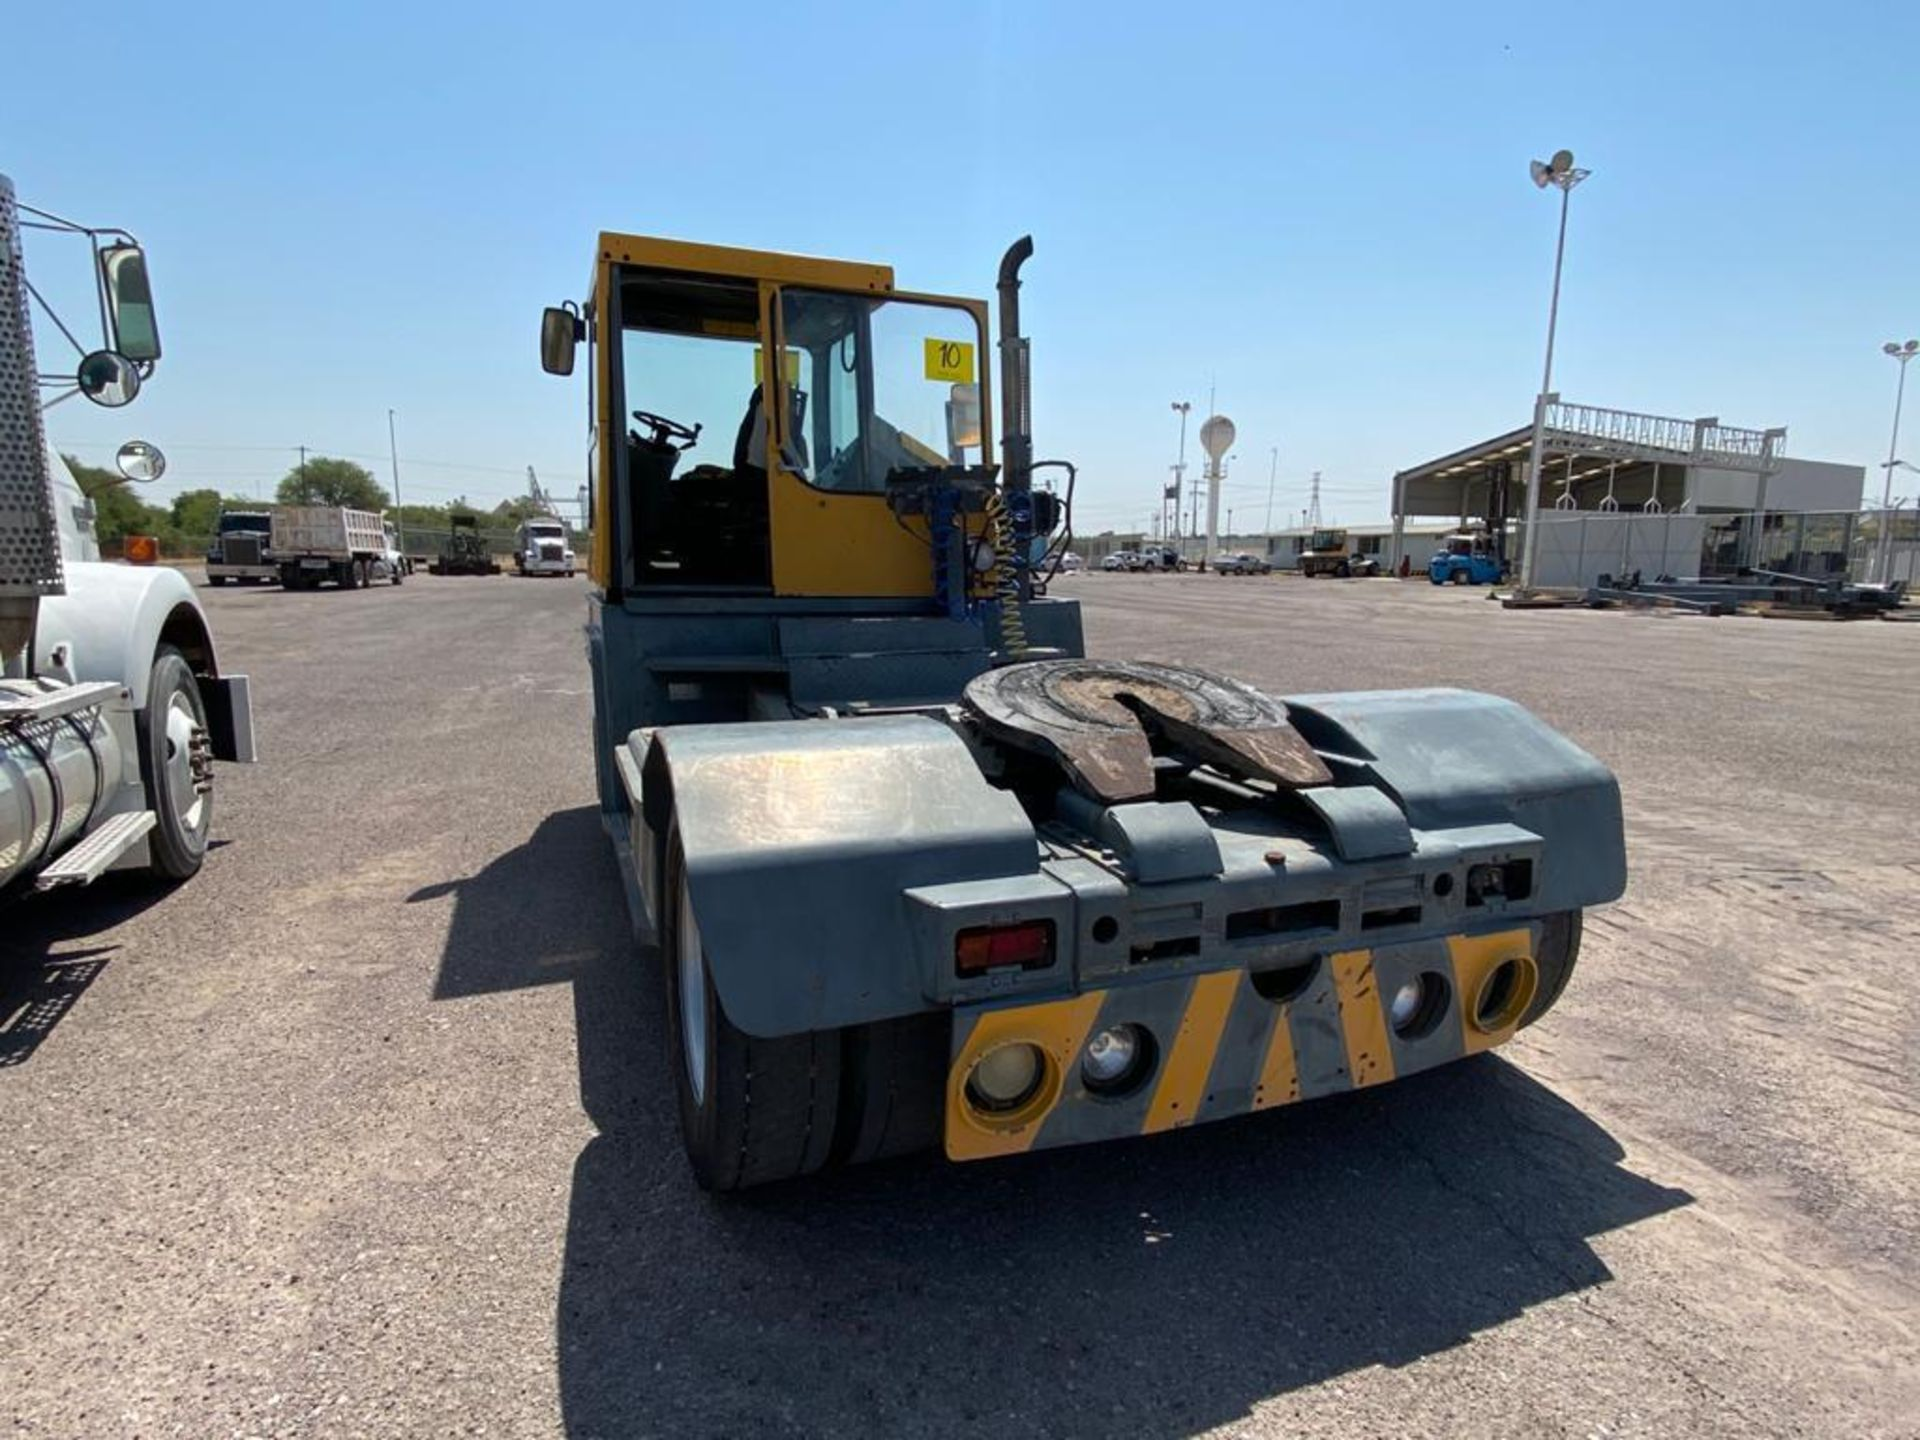 Terberg Capacity 2002 Terminal Tractor, automatic transmissio - Image 14 of 28